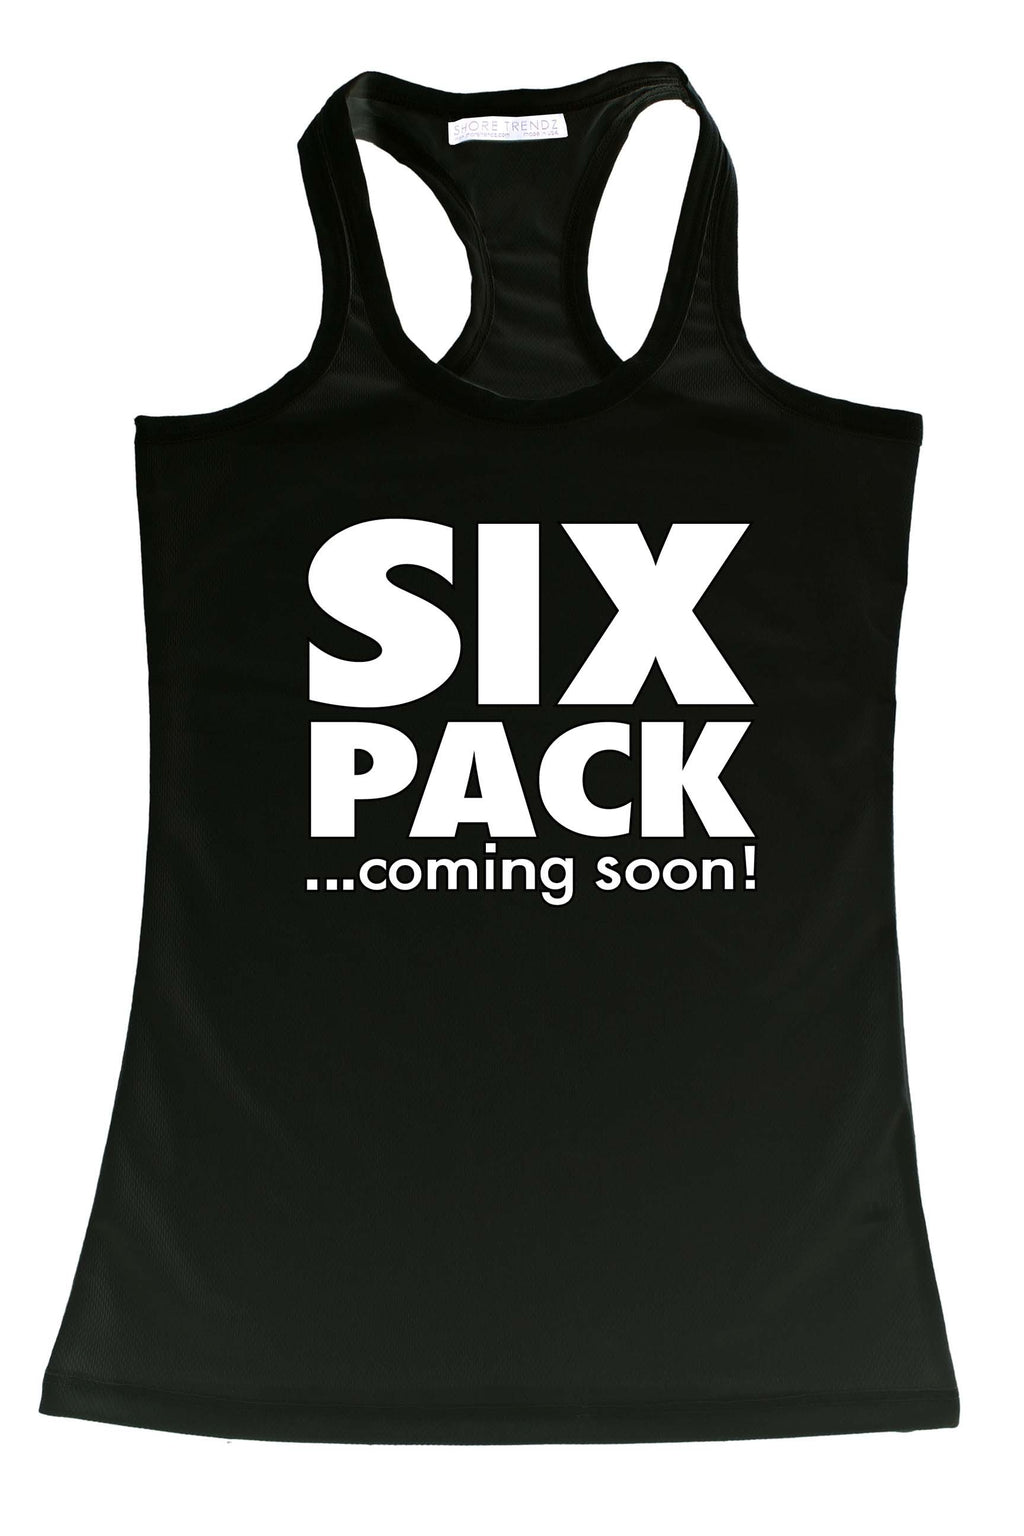 Women's Funny Six Pack ...Coming Soon Workout Racer Back Tank Top